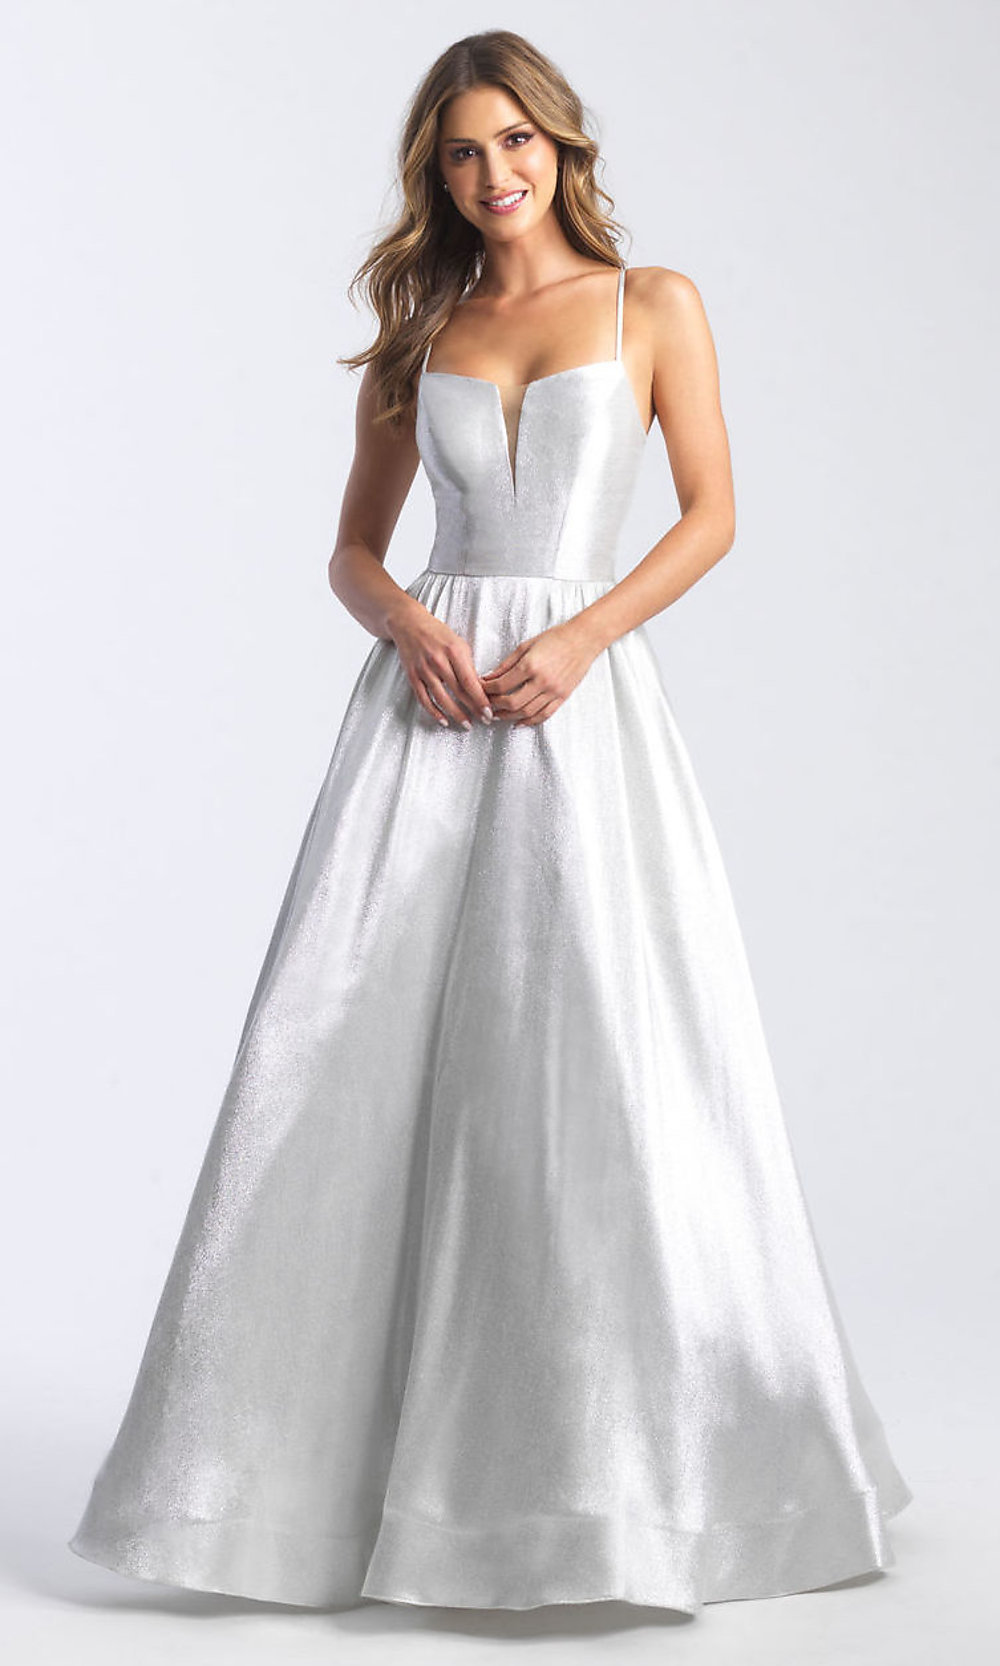 Long Shimmer Silver A-Line Formal Prom Dress -PromGirl